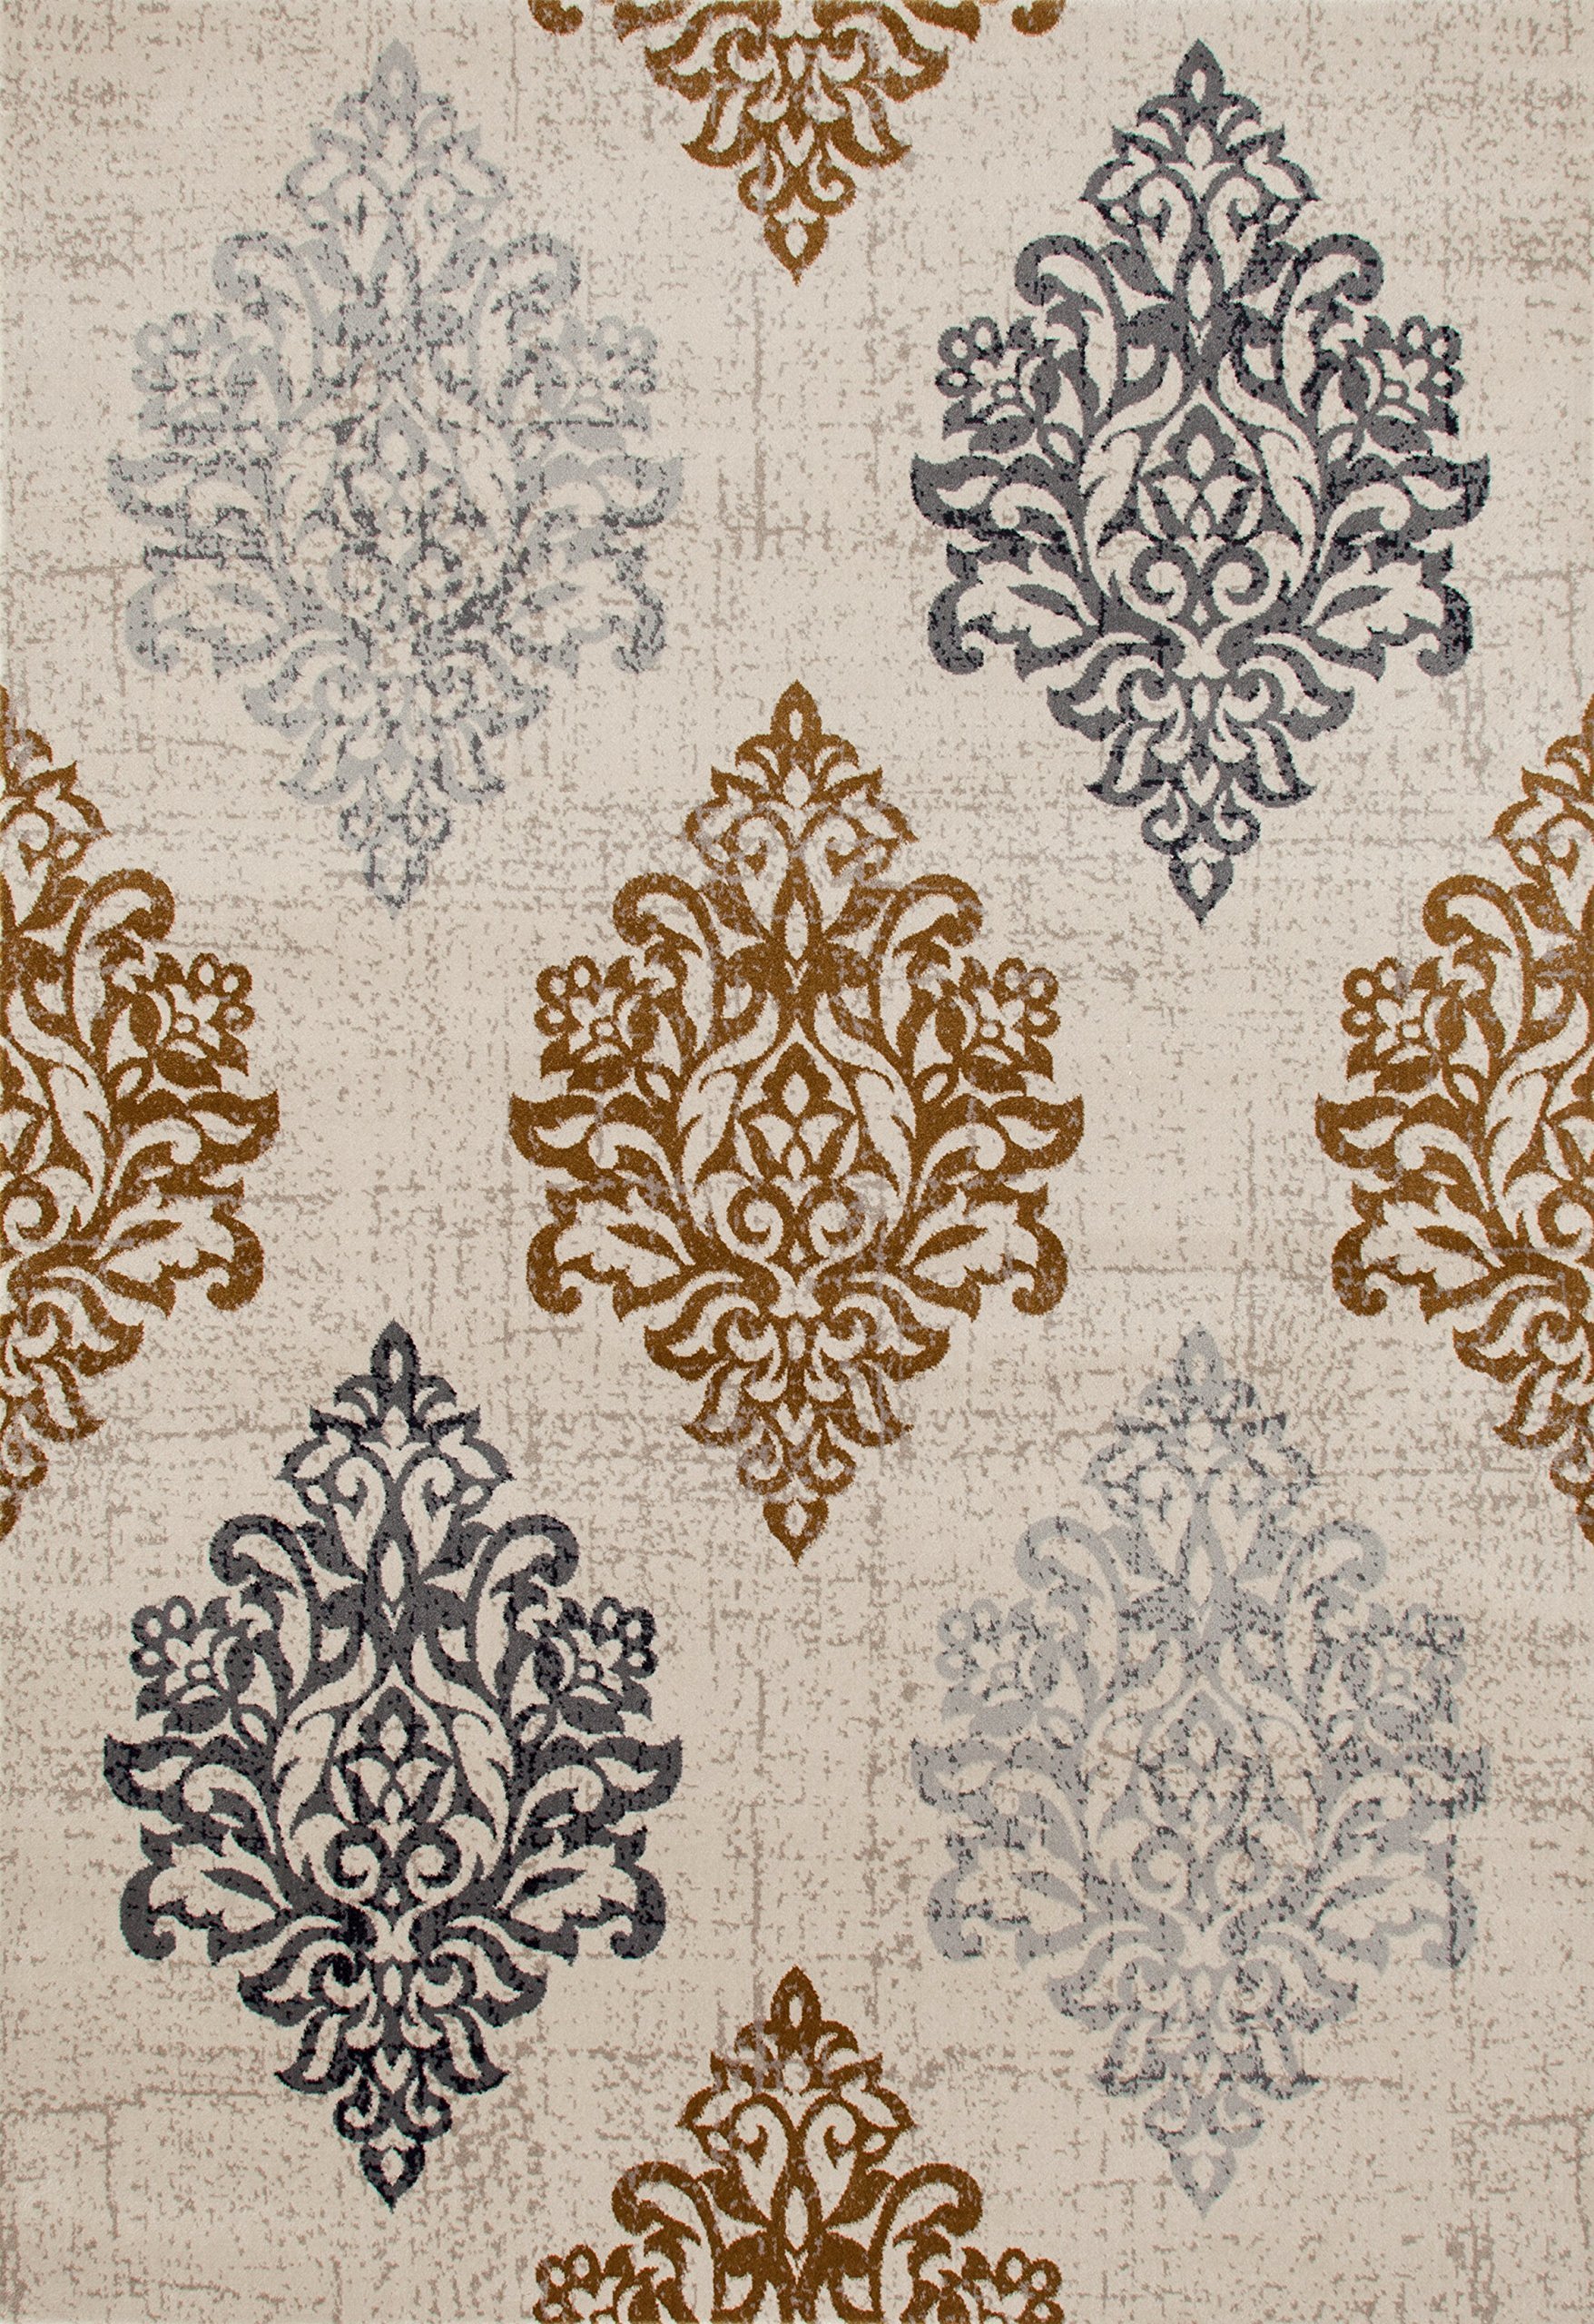 """Transitional Damask Soft Yellow 3'3"""" x 5' Area Rug (New) - HIGH QUALITY AREA RUG,Soft and Plush to walk on, Perfect for your home,Living room,Dining Room,Kitchen,office Made in Turkey, 100% Polypropylene Machine made area rug with jute backing. These rugs will naturally resist stains, fading, soil and bacteria making them perfect addition to homes with kids and pets. Brand new, Great value area rug. The high-quality polypropylene pile fiber adds durability and longevity to these rugs, the power loomed construction adds durability to this rug, ensuring it will be a favorite for a long time. - living-room-soft-furnishings, living-room, area-rugs - A1DQCRclH1L -"""